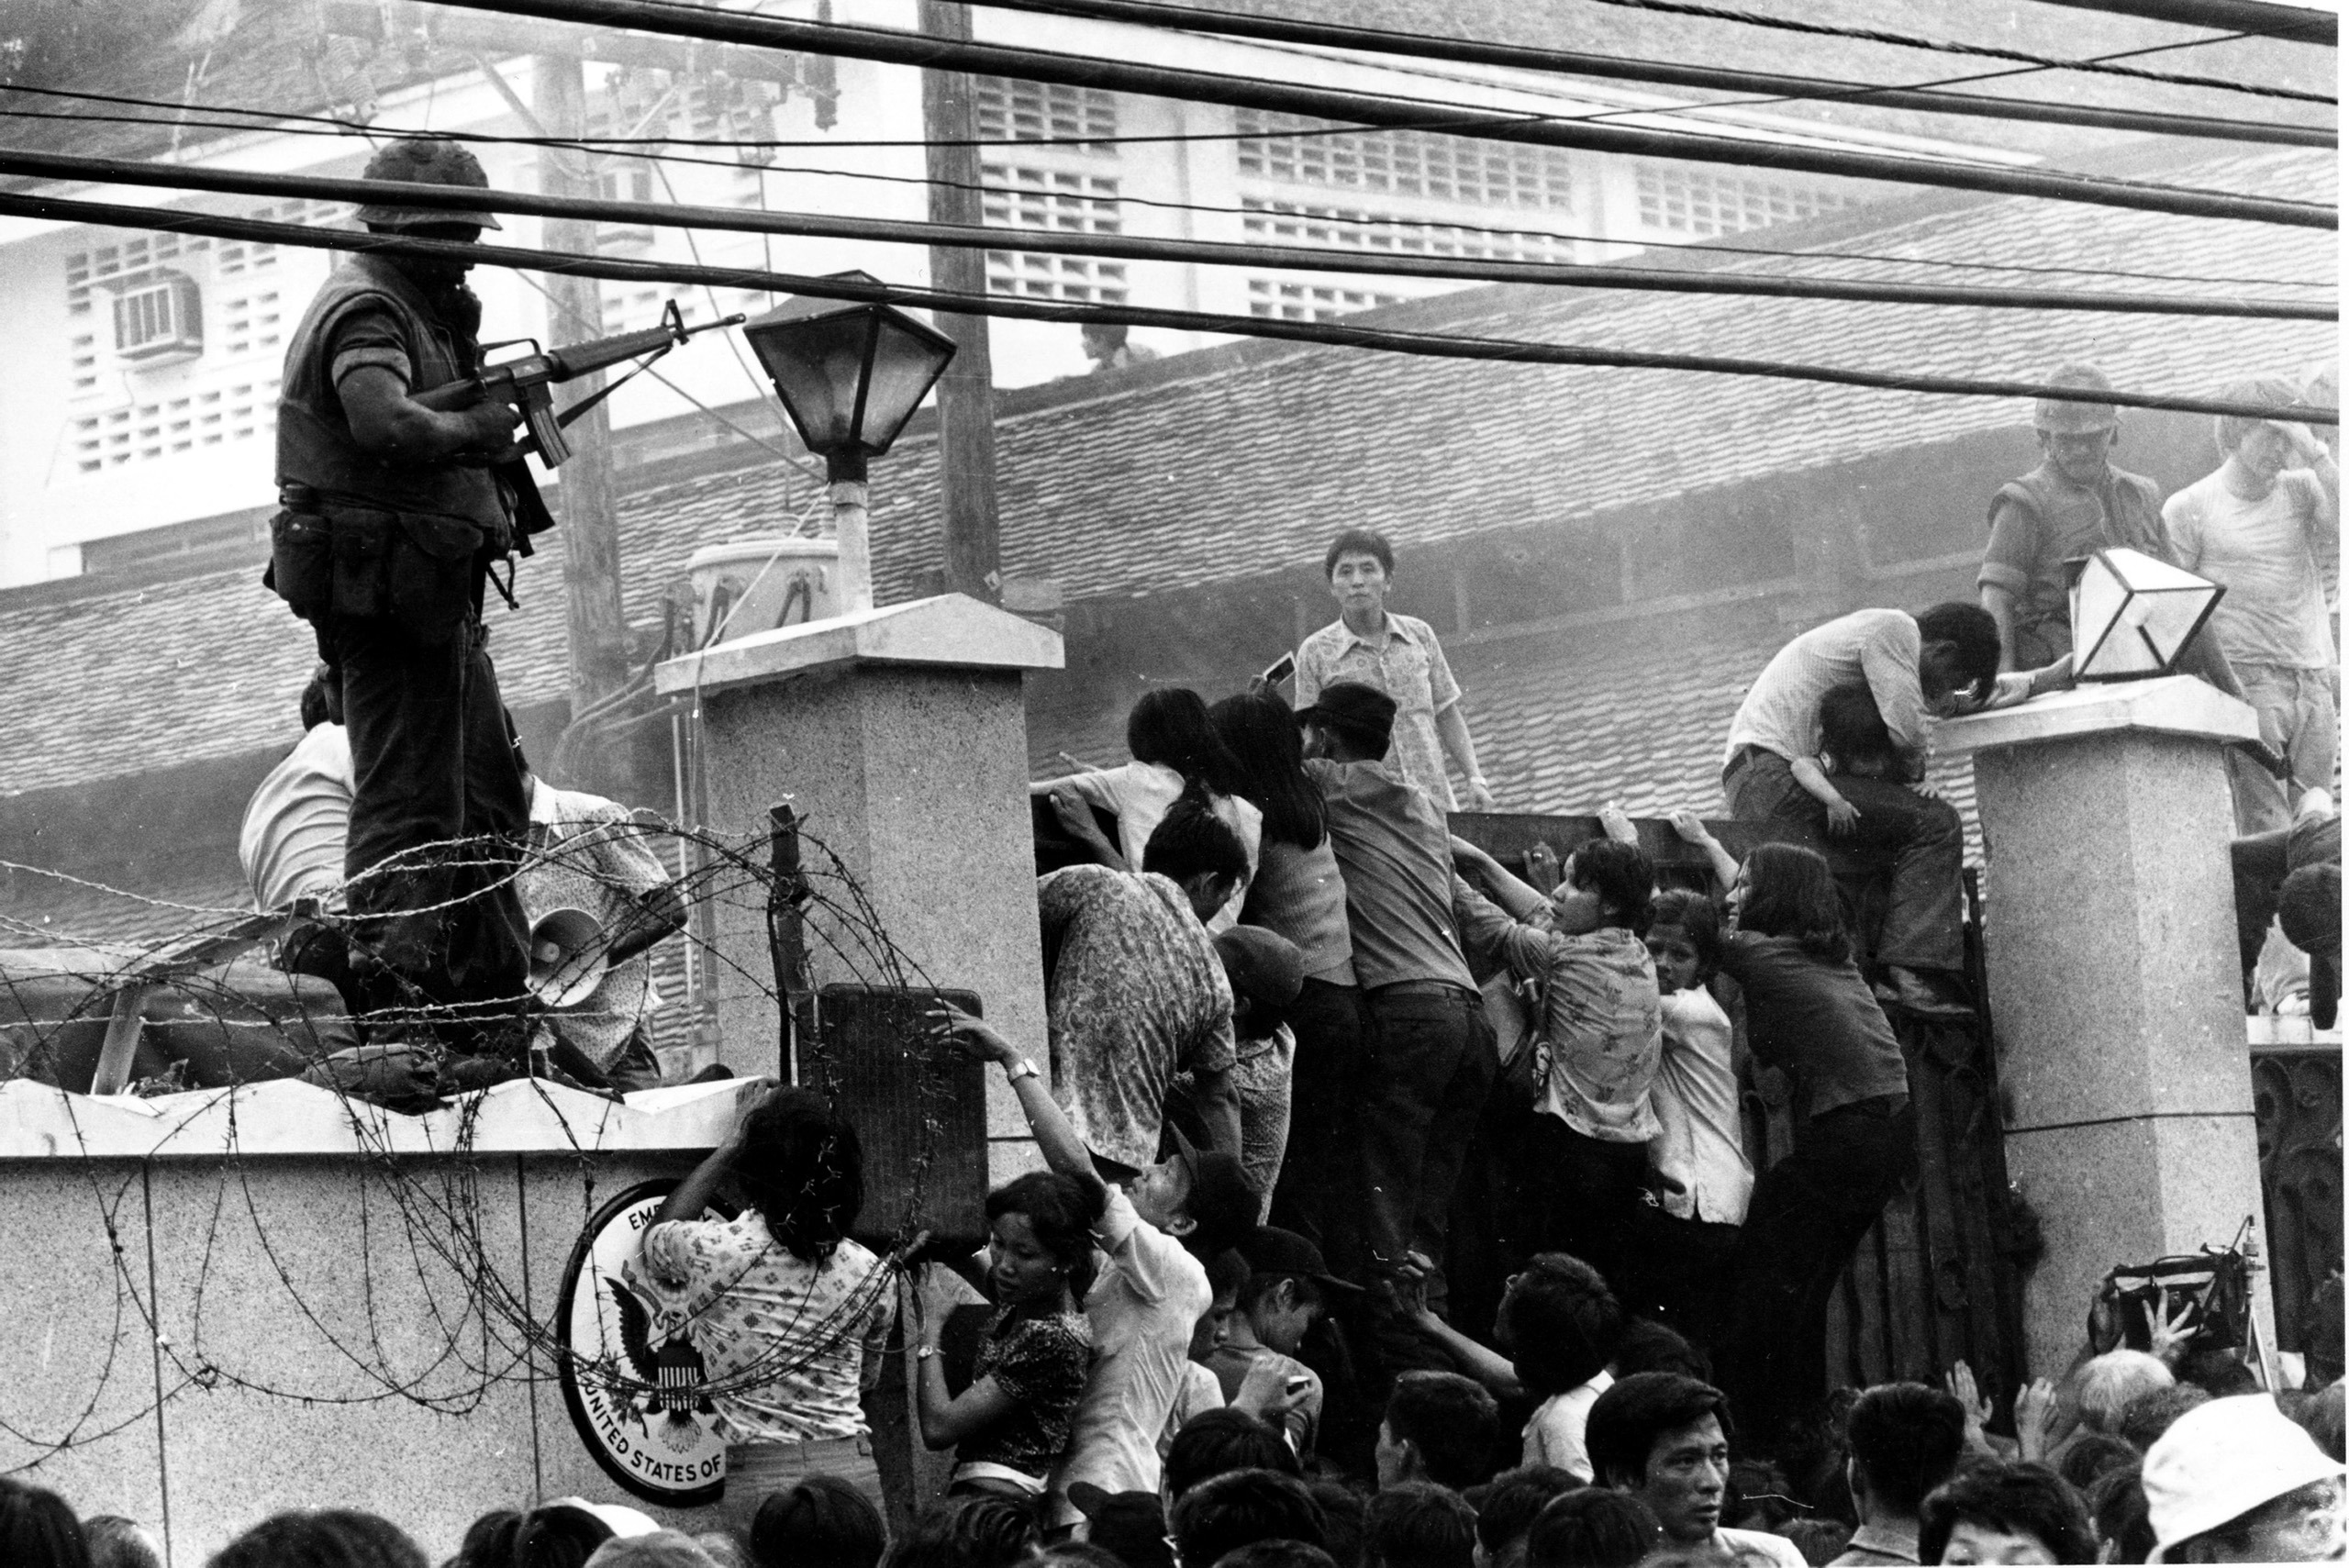 Citizens scale the wall of the U.S. Embassy in Saigon, trying to get to the helicopter pickup zone.